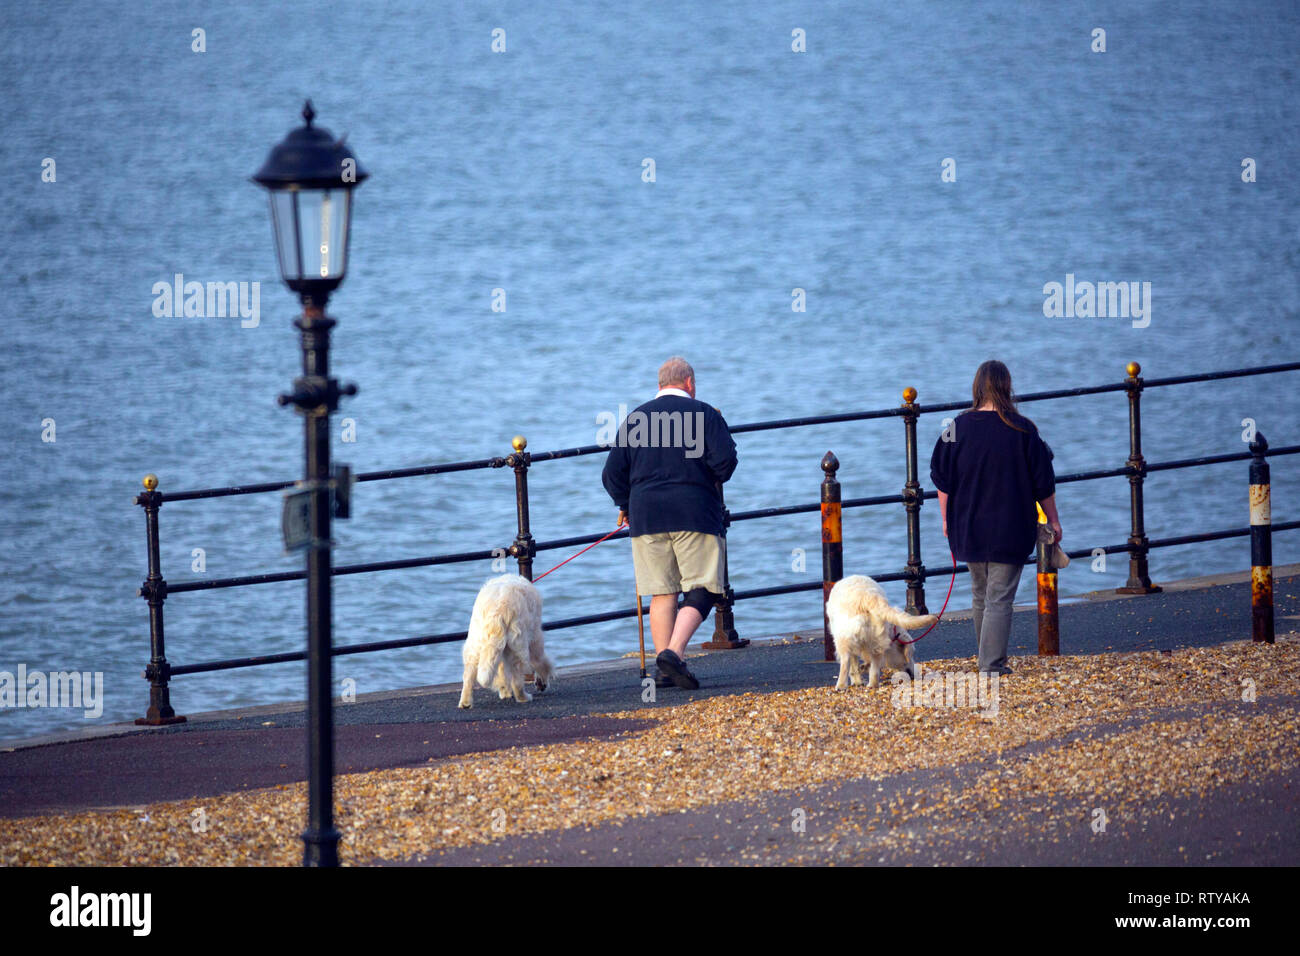 dog,walkers, labradors, two,seafront,lamp, sea,side, sea,lead, leish, - Stock Image